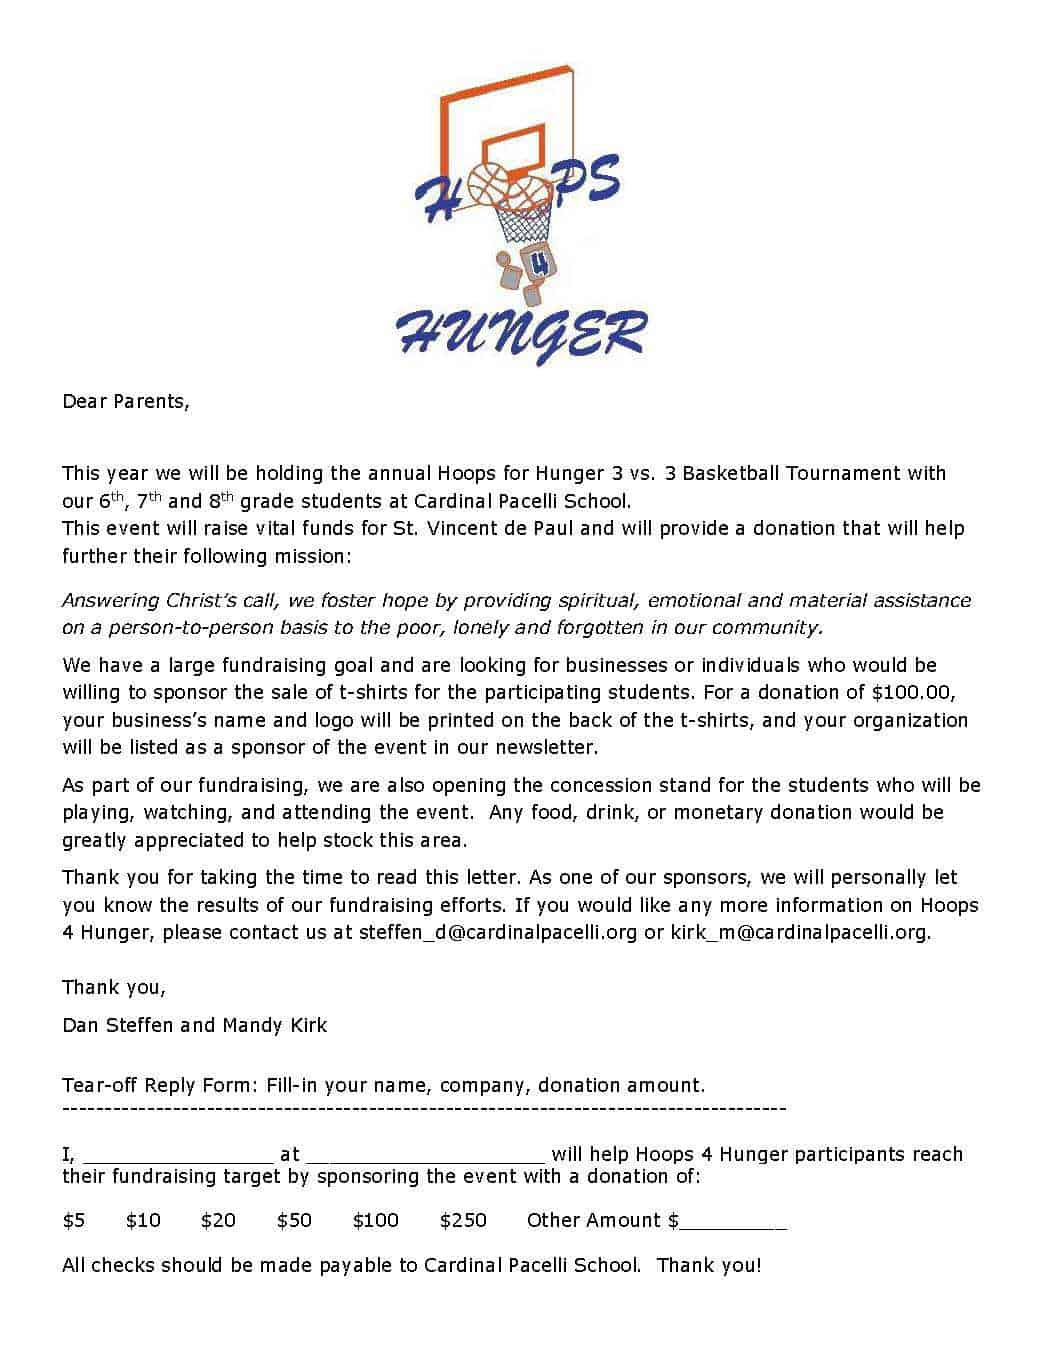 Sponsorship Intent Letter – Letter of Intent for Sponsorship